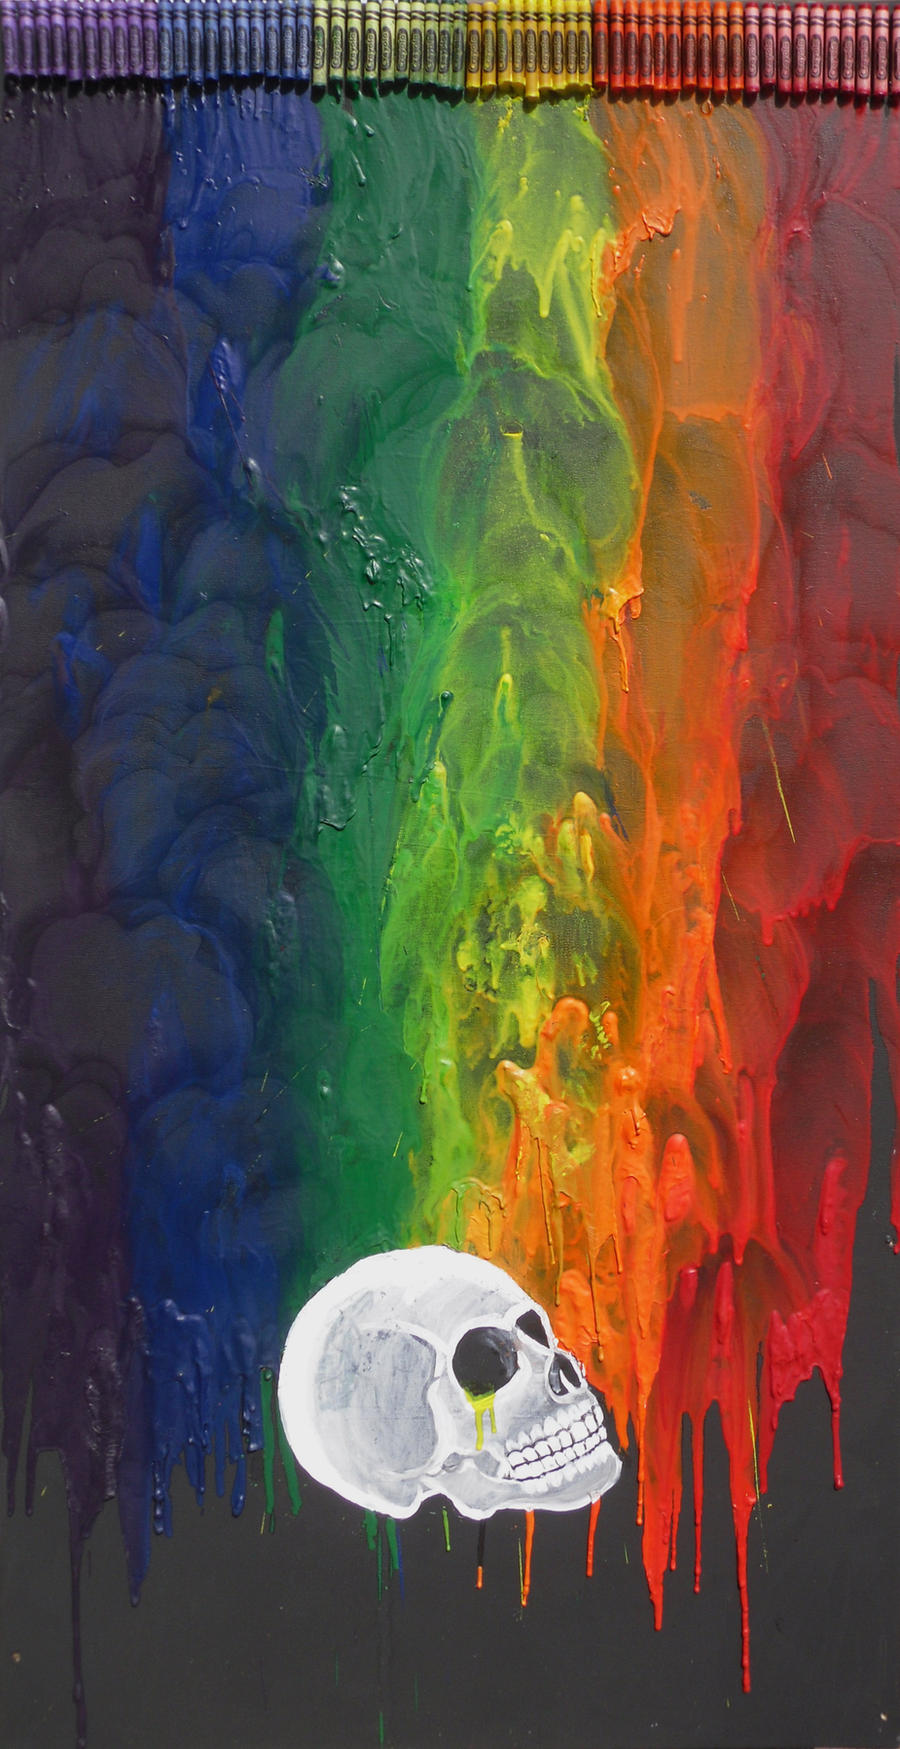 Crayon Art - Rainbow Skull by randomranma